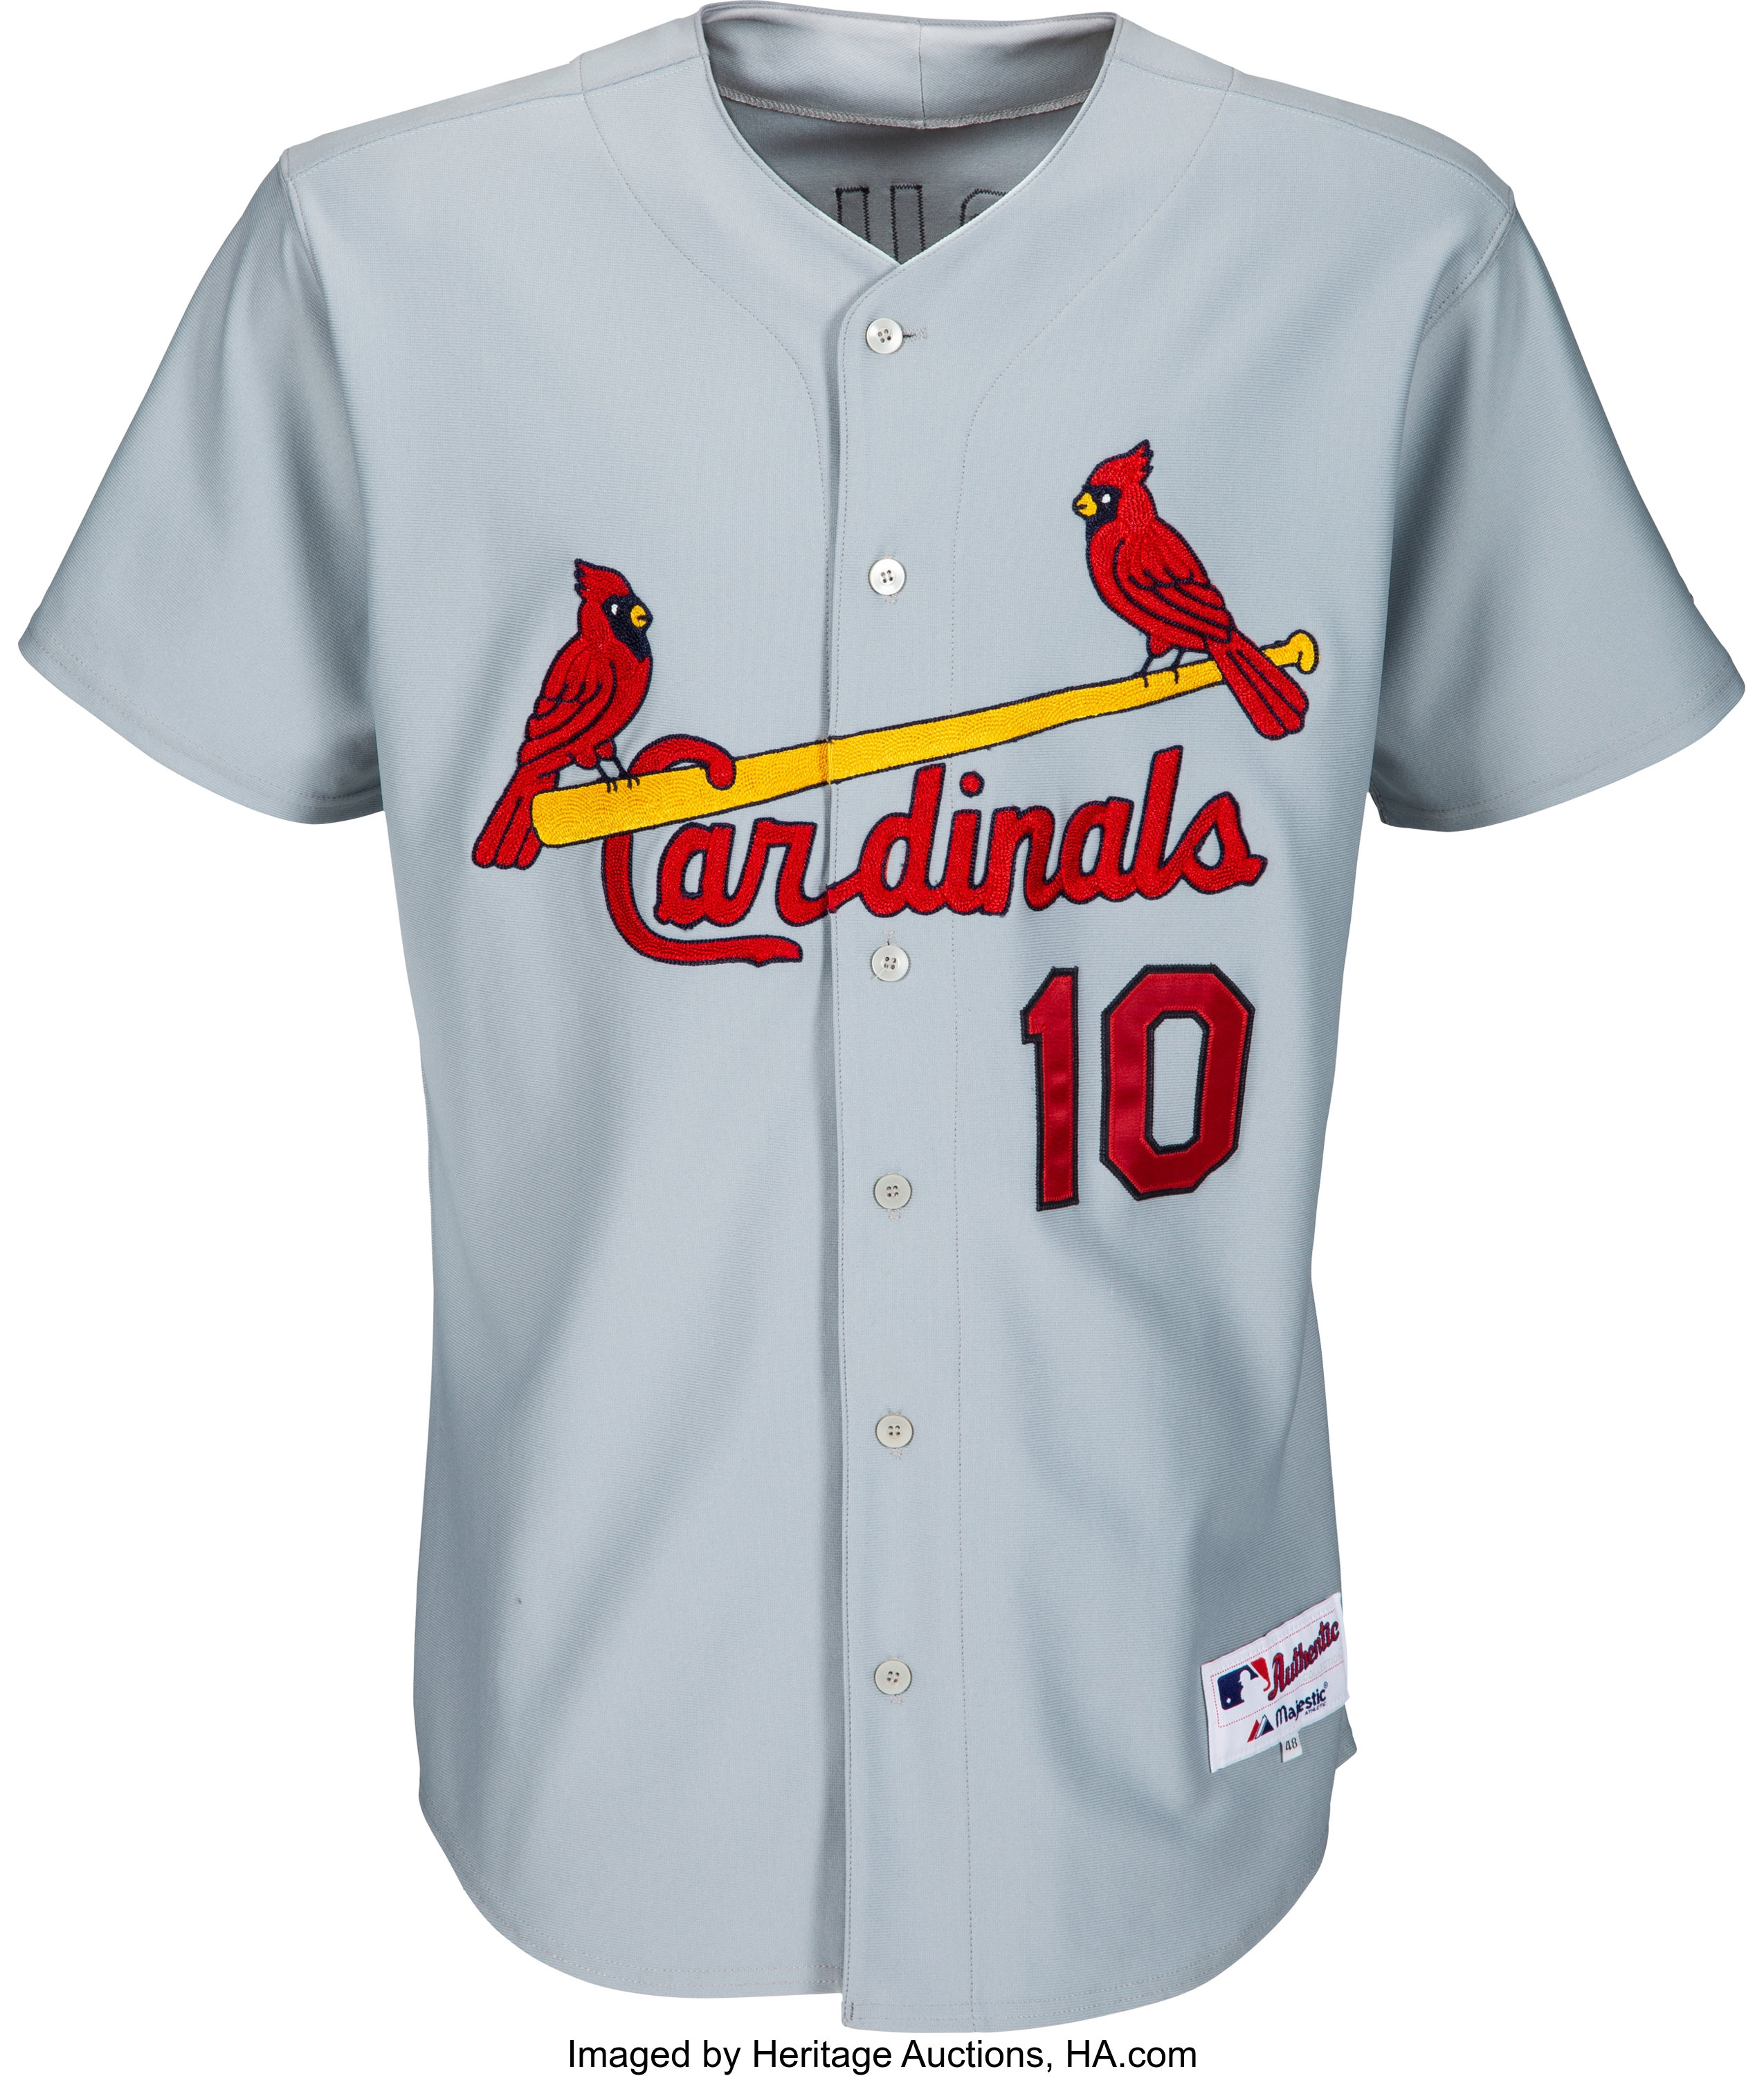 2006 Tony Larussa Game Worn Signed St Louis Cardinals Jersey Lot 57135 Heritage Auctions